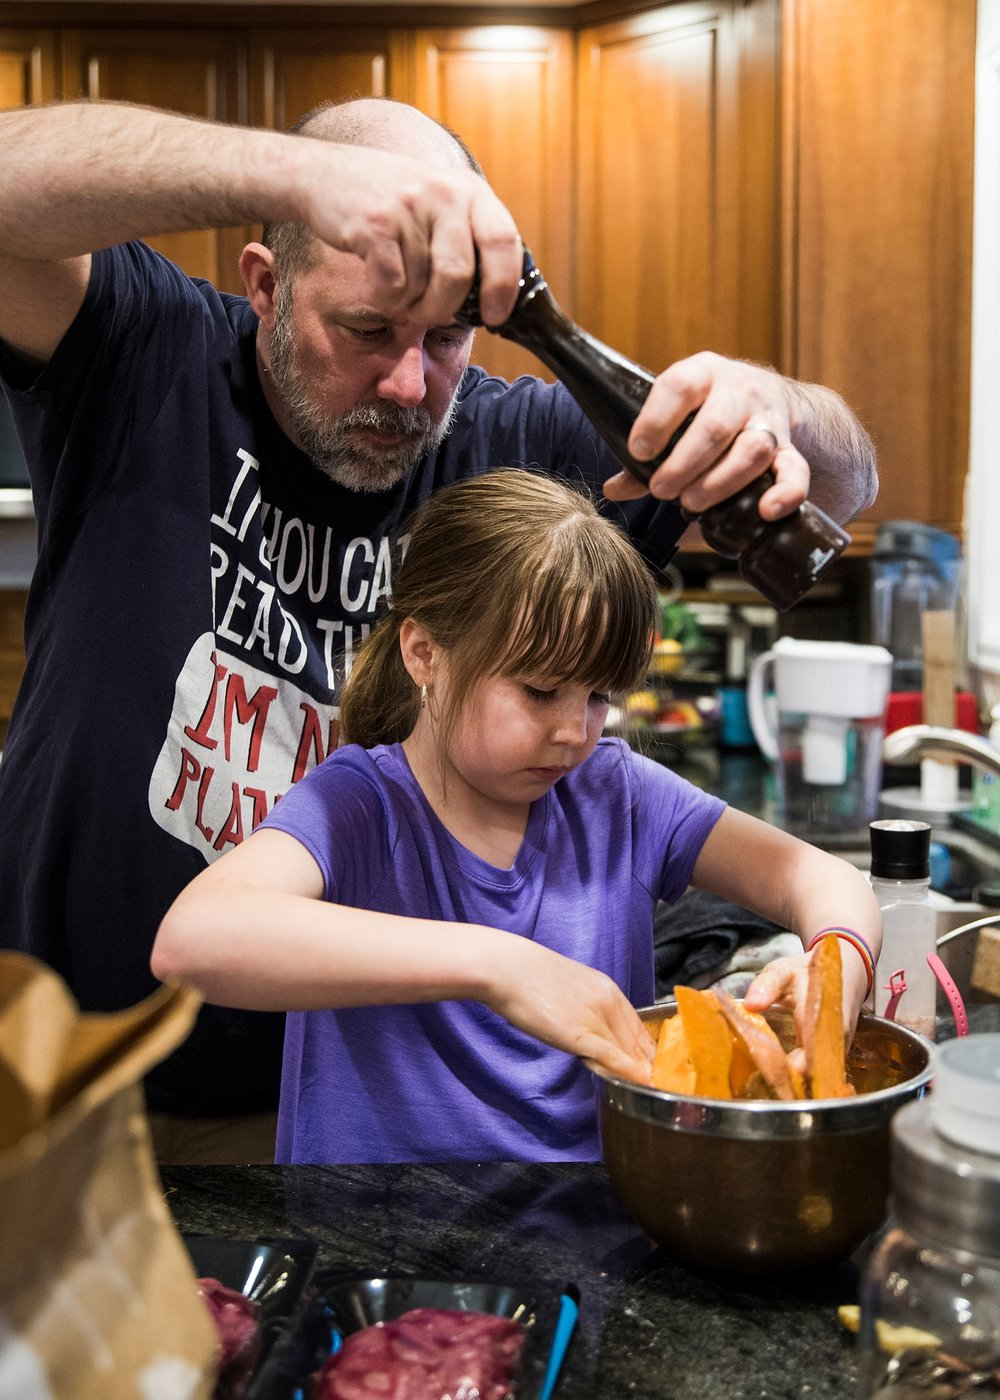 Why homeschool your child? To allow them to learn life skills like cooking!